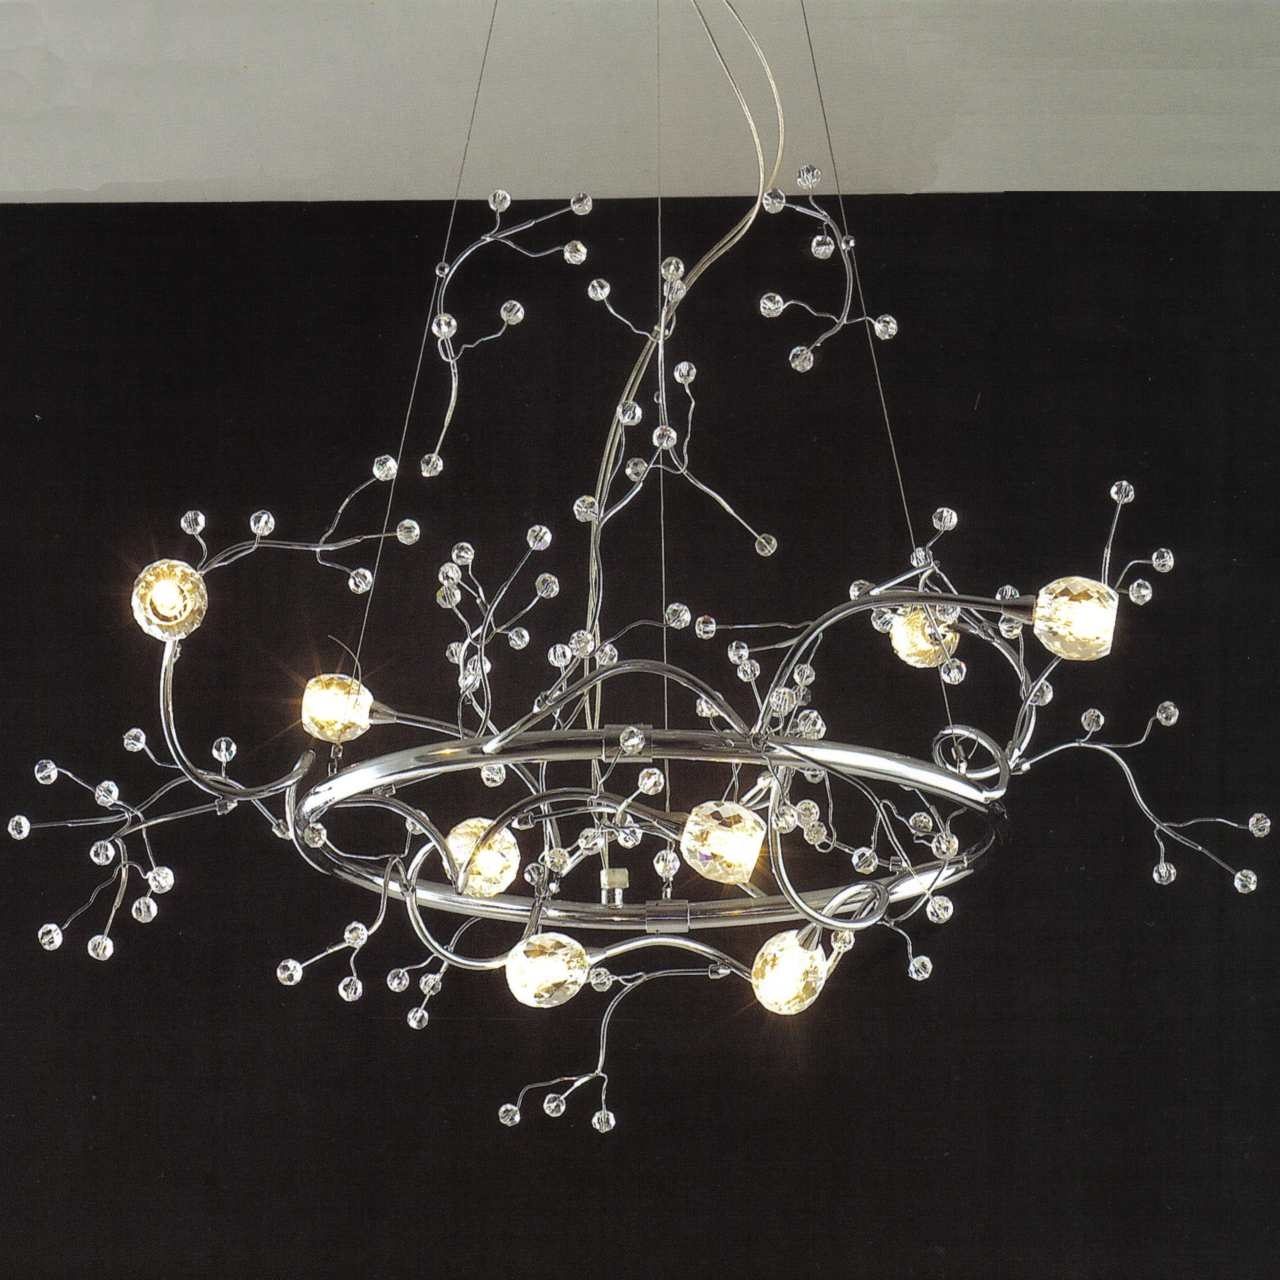 Brizzo Lighting Stores 32 Anelli Modern Crystal Round: 12 Photo Of Crystal Branch Chandelier